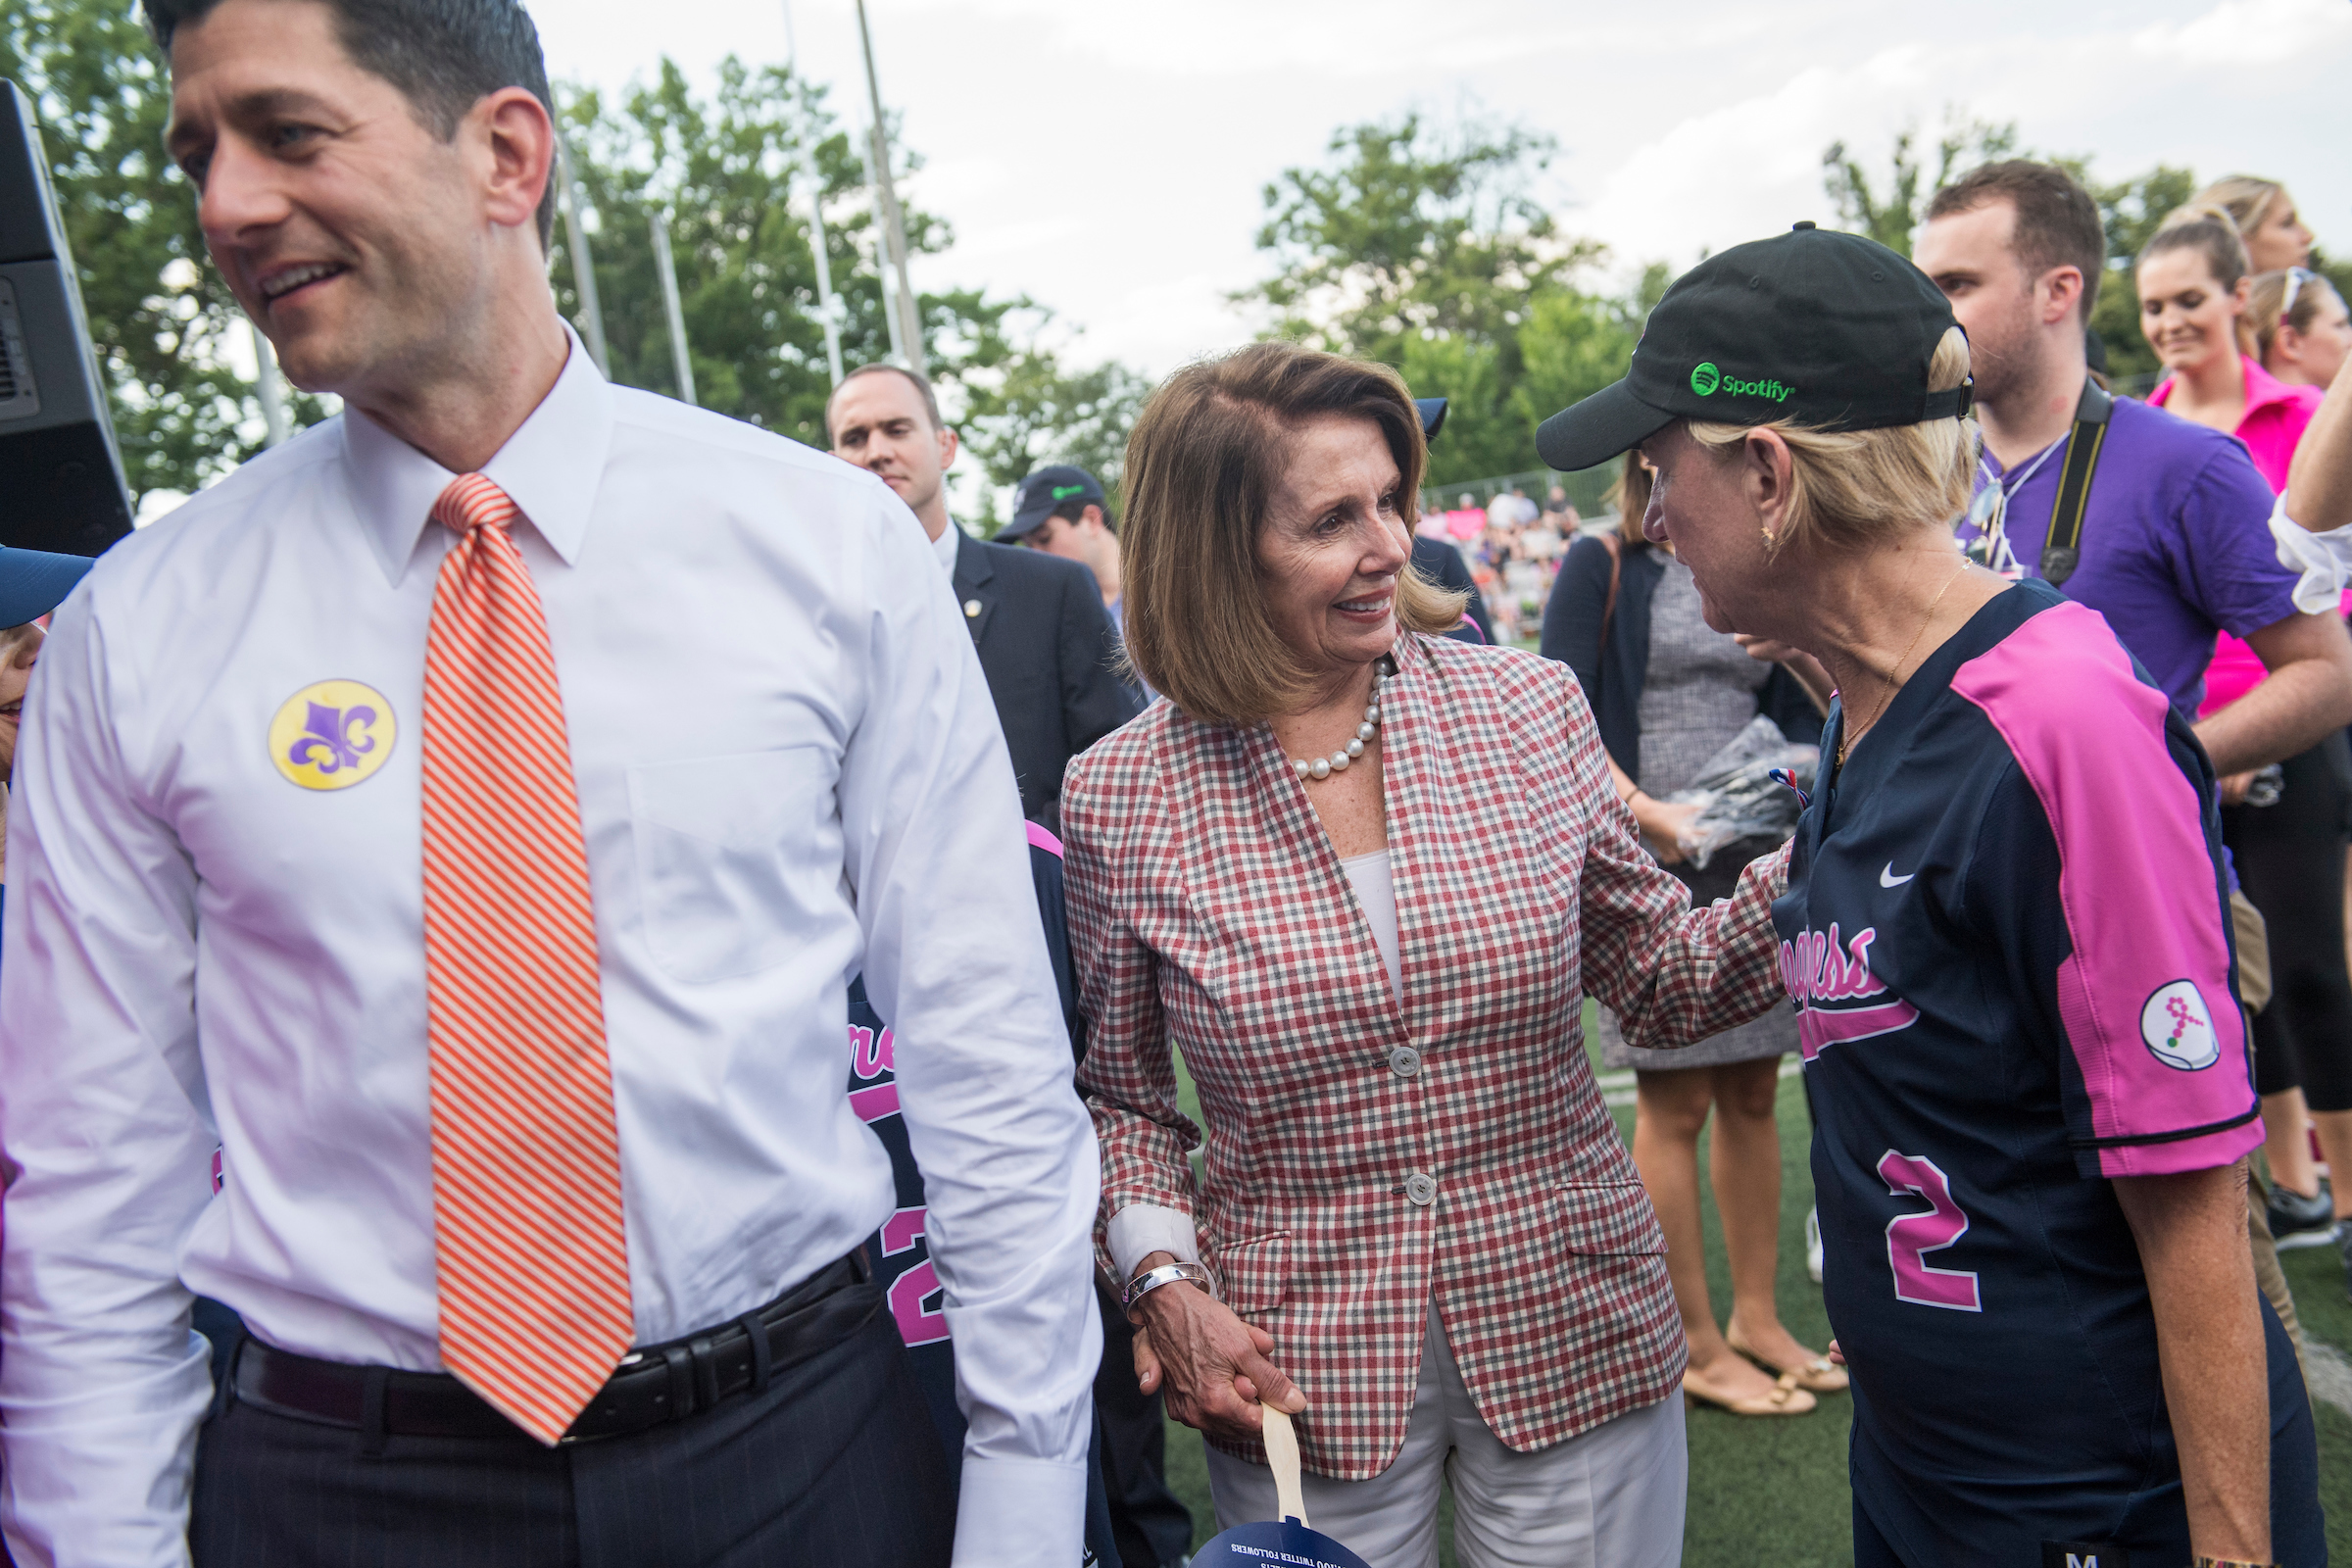 UNITED STATES - JUNE 21: From left, Speaker of the House Paul Ryan, R-Wis., House Minority Leader Nancy Pelosi, D-Calif., and Sen. Shelley Moore Capito, R-W.Va., arrive for the Congressional Women's Softball game that pits Congresswomen against female journalists at Watkins Recreation Center on Capitol Hill, June 21, 2017. The game benefits the Young Survival Coalition that helps young women with breast cancer. The press team prevailed 2-1. (Photo By Tom Williams/CQ Roll Call)